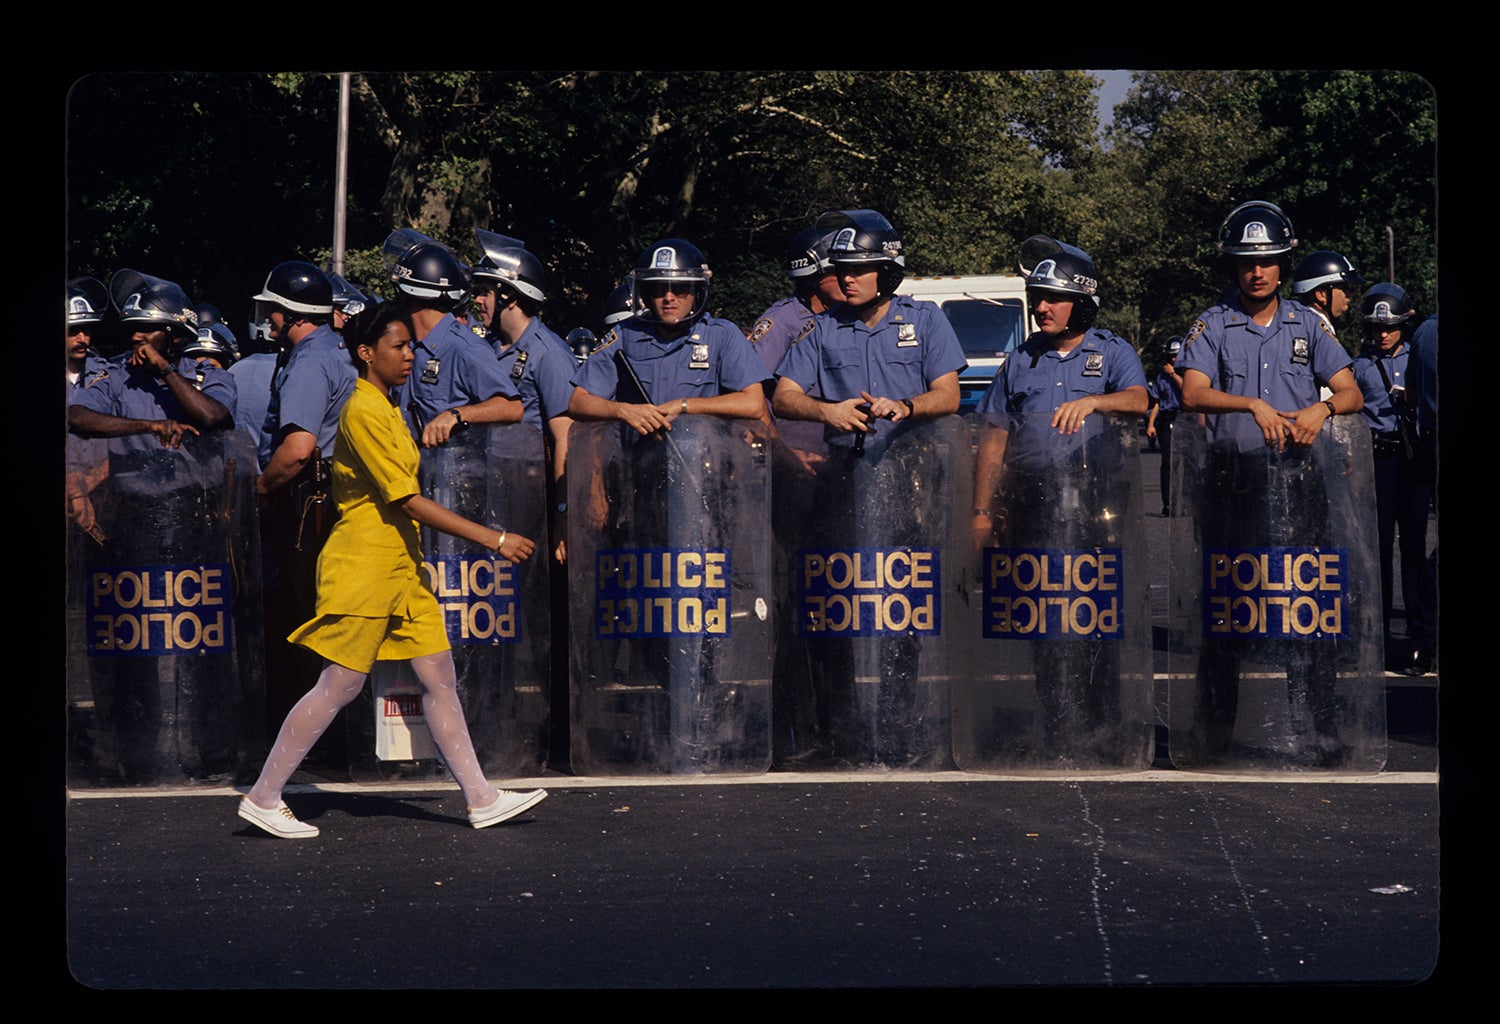 New York City Protest Photography Before the Age of Social Media